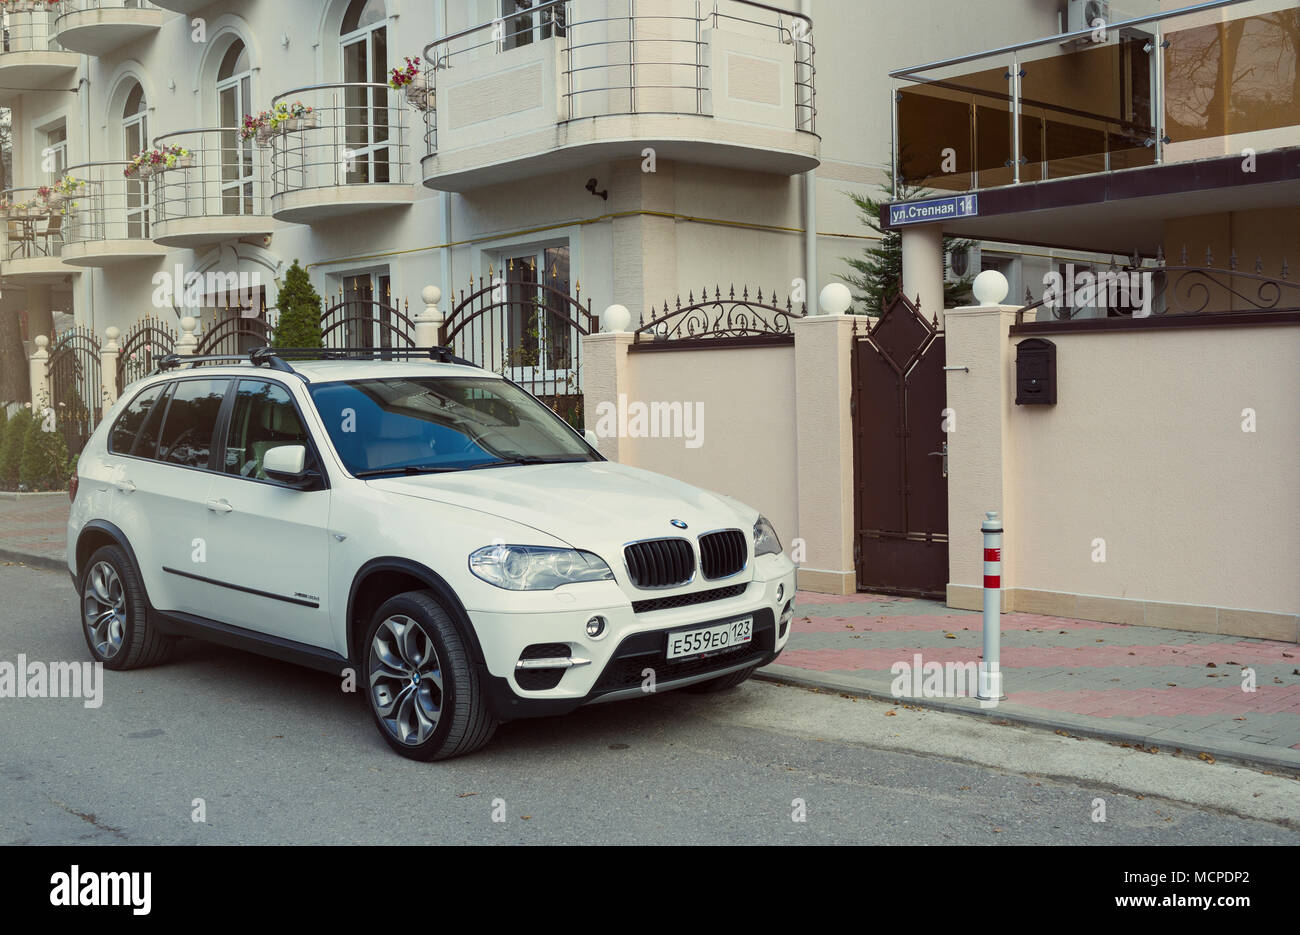 Novorossiisk, Russia - November 26, 2017: New luxury BMW x5 parked near house in street of the Sochi city. - Stock Image